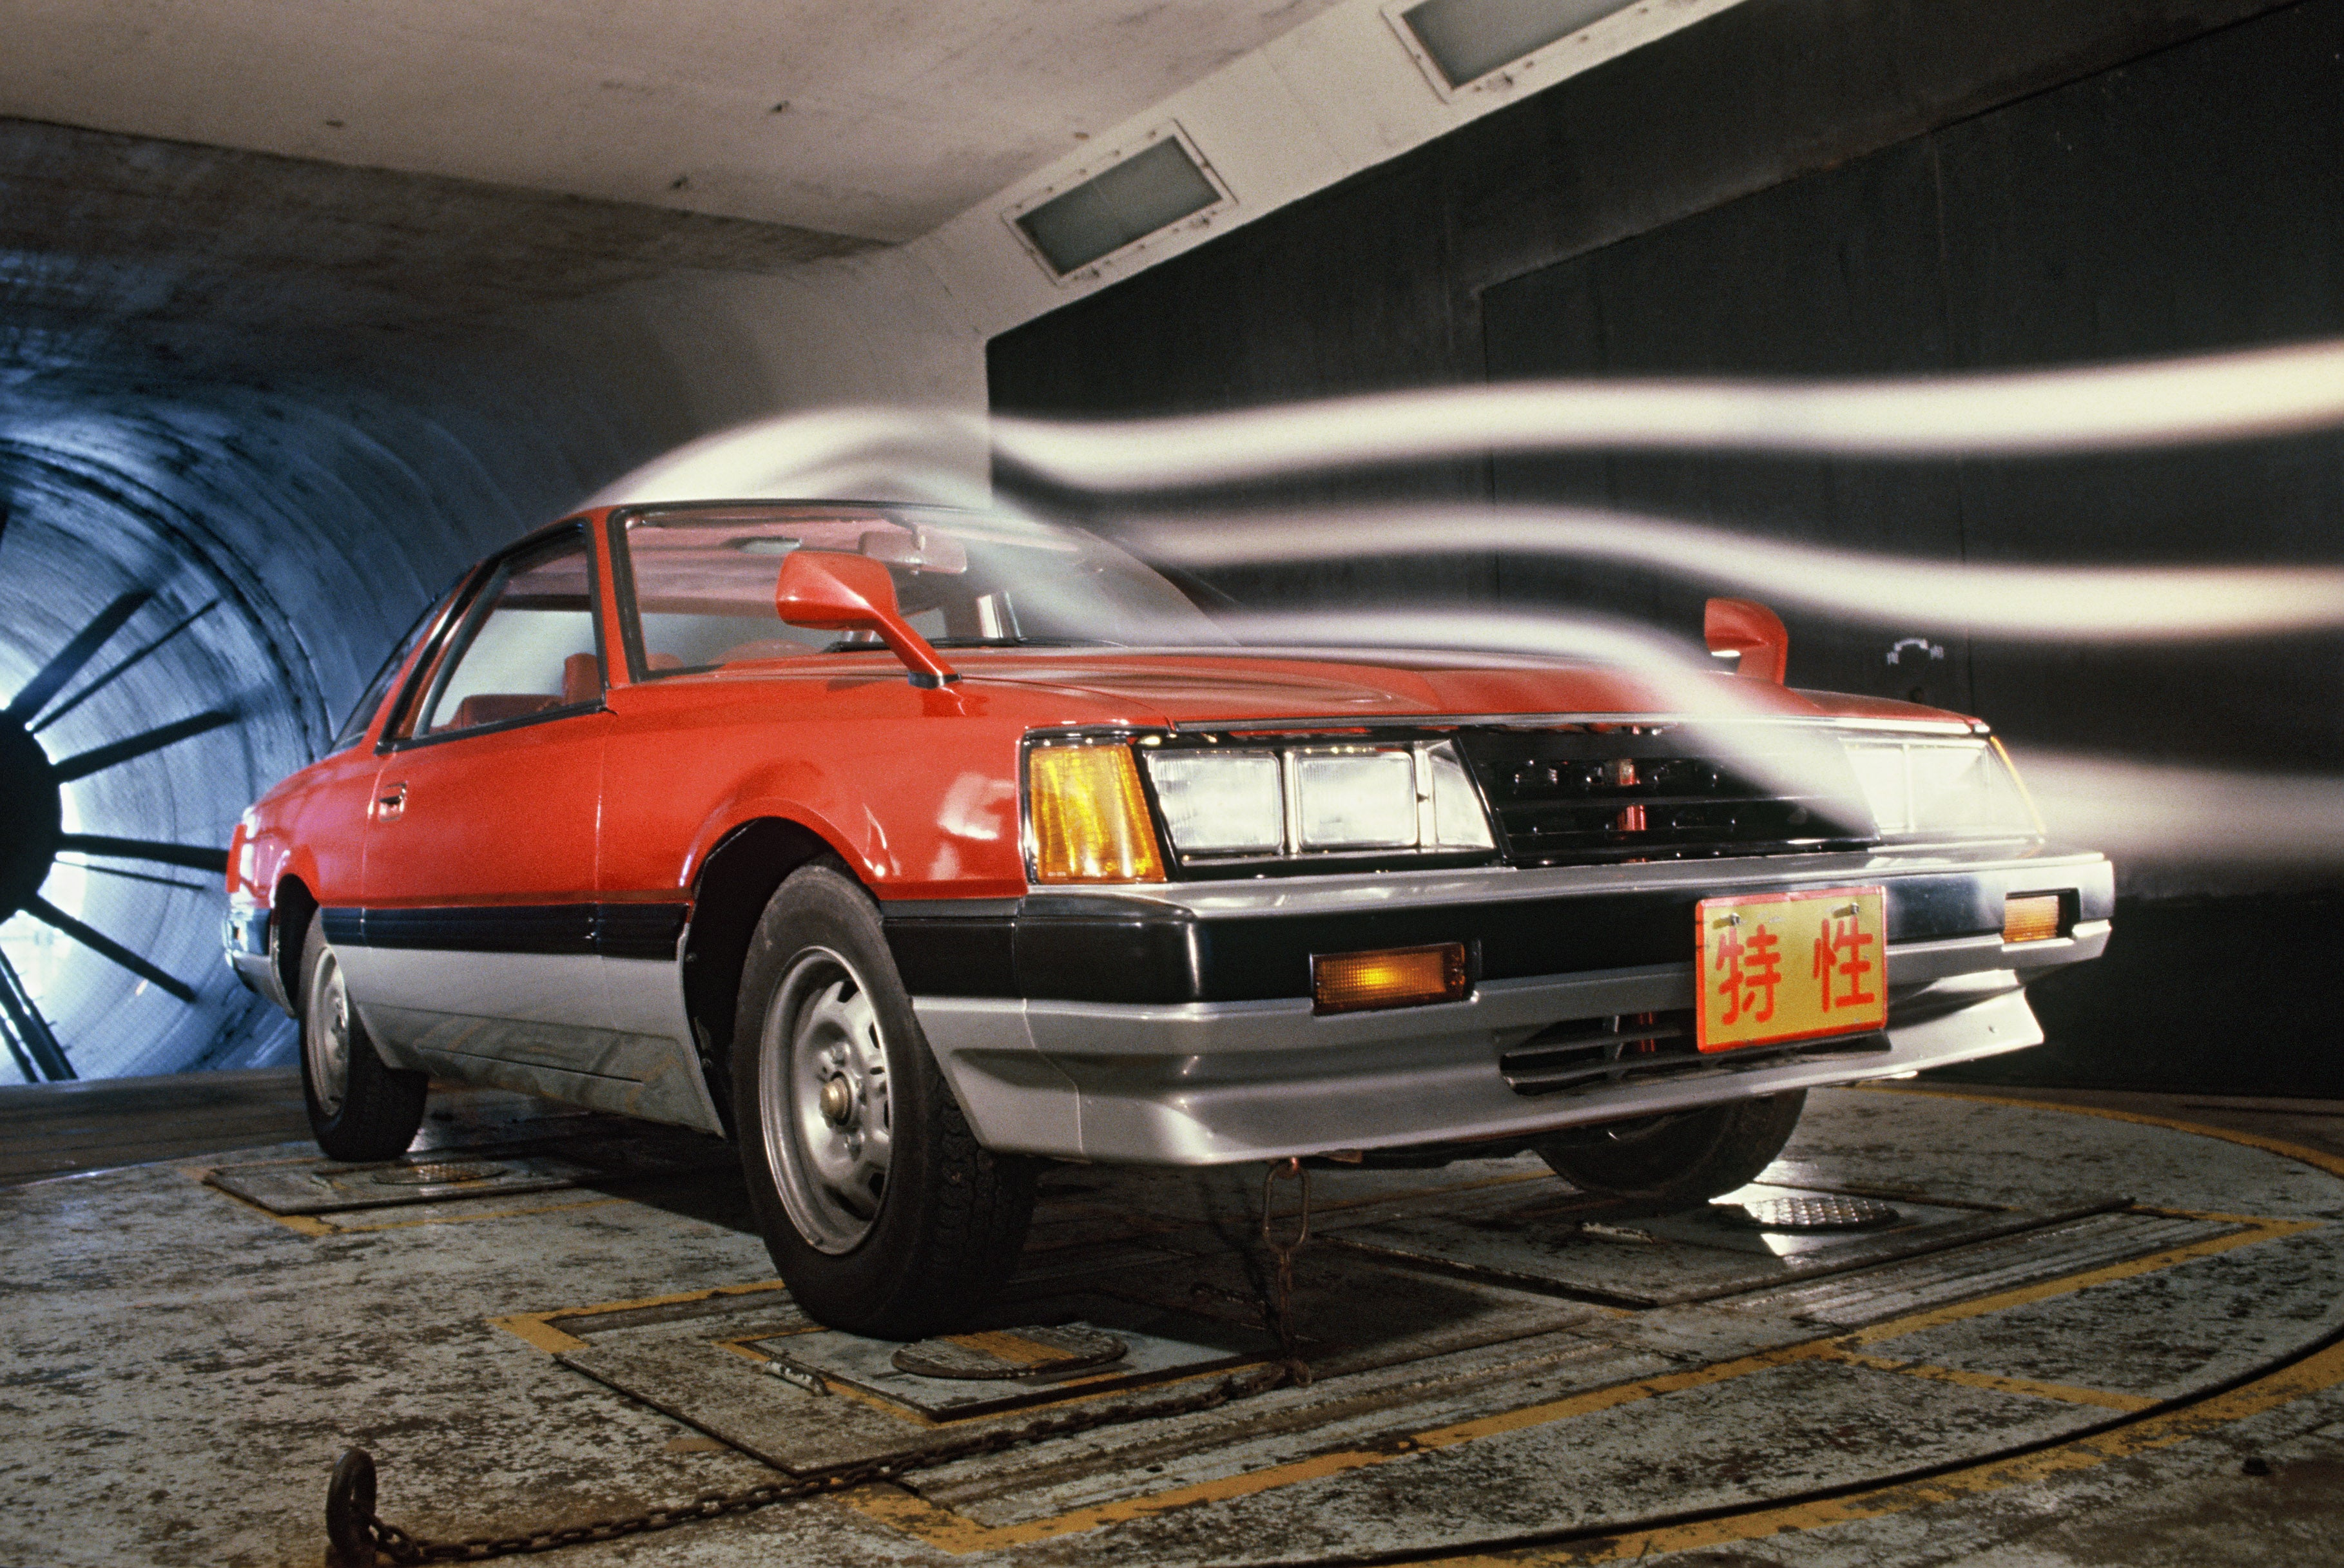 In 1980, Nissan Was Hard At Work On The Leopard